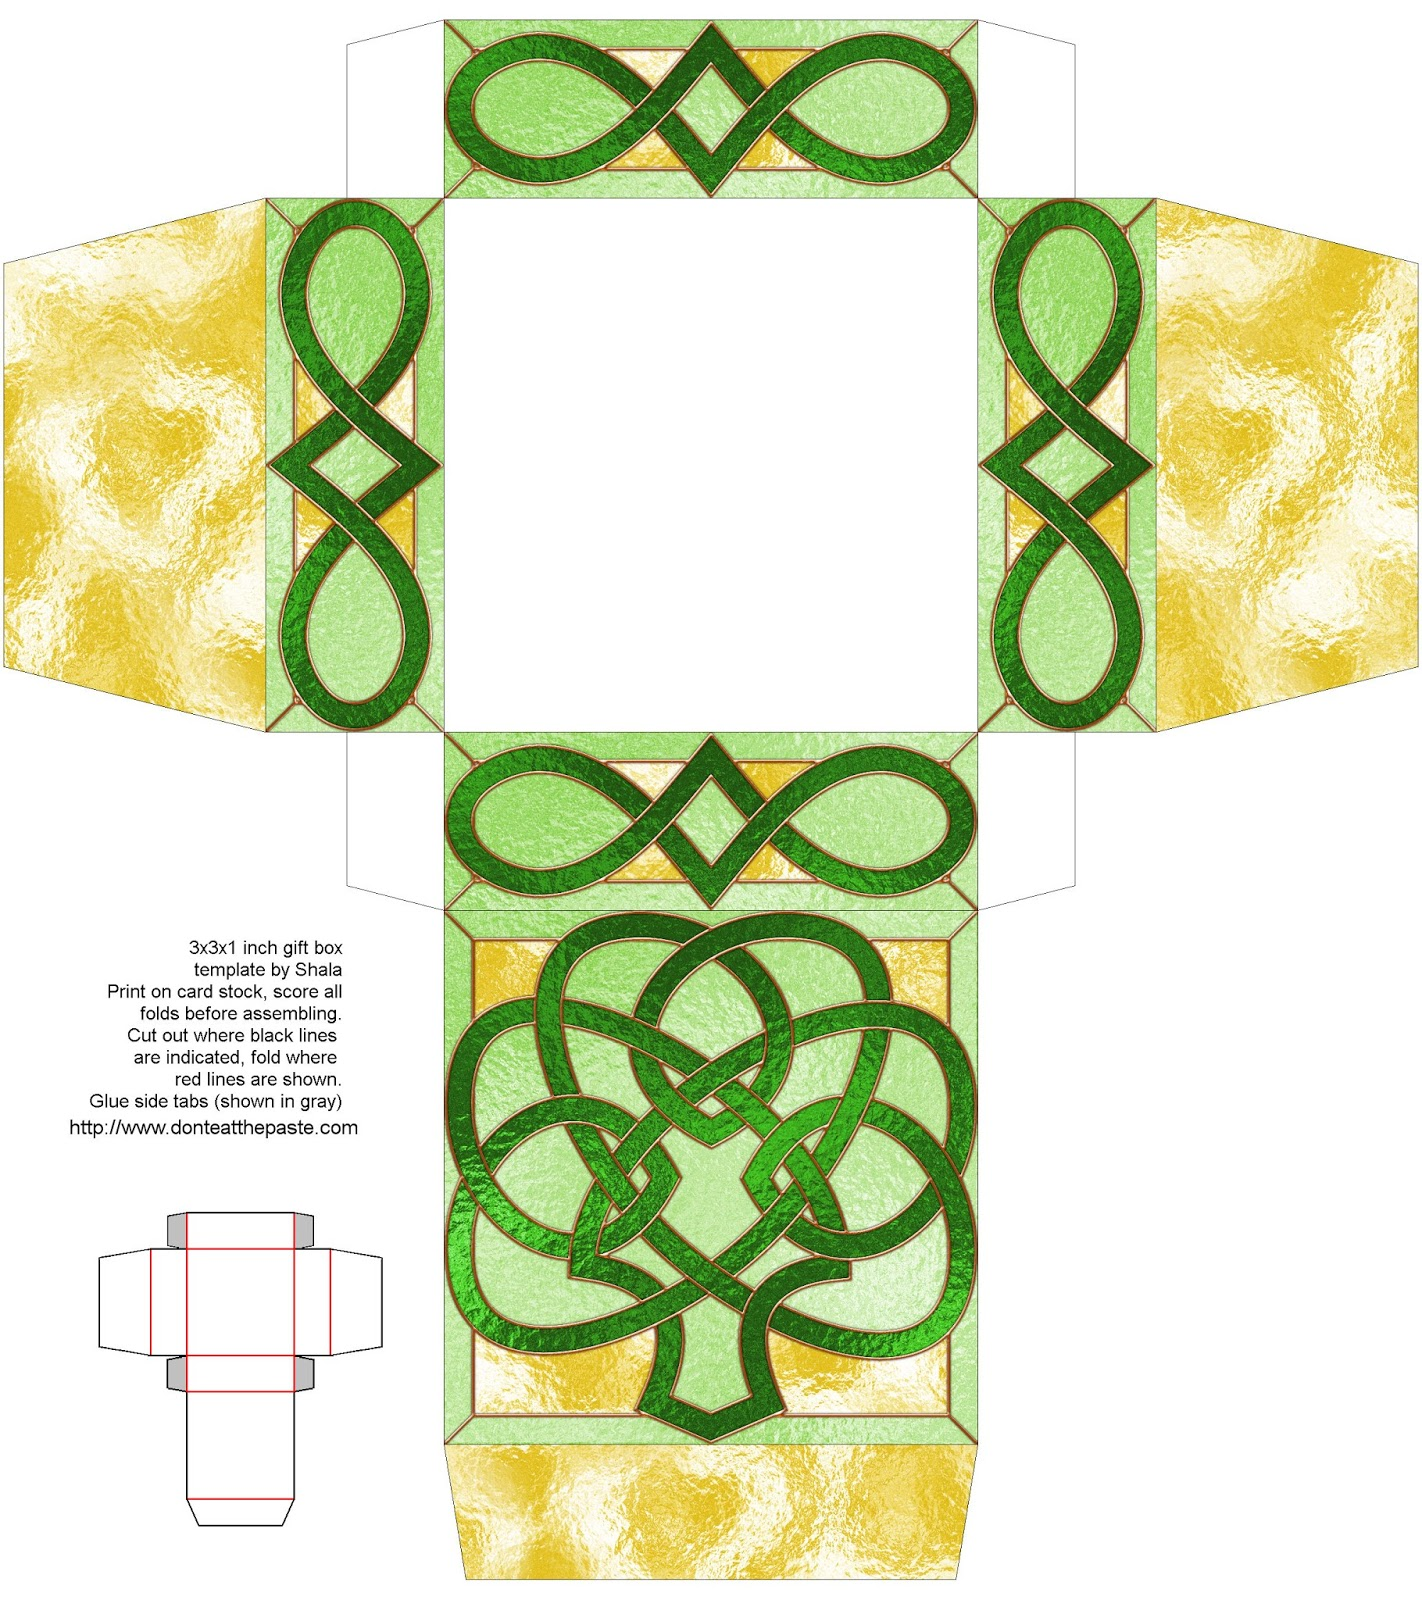 Stained glass knotwork shamrock box to print and make- blank version to color also available.